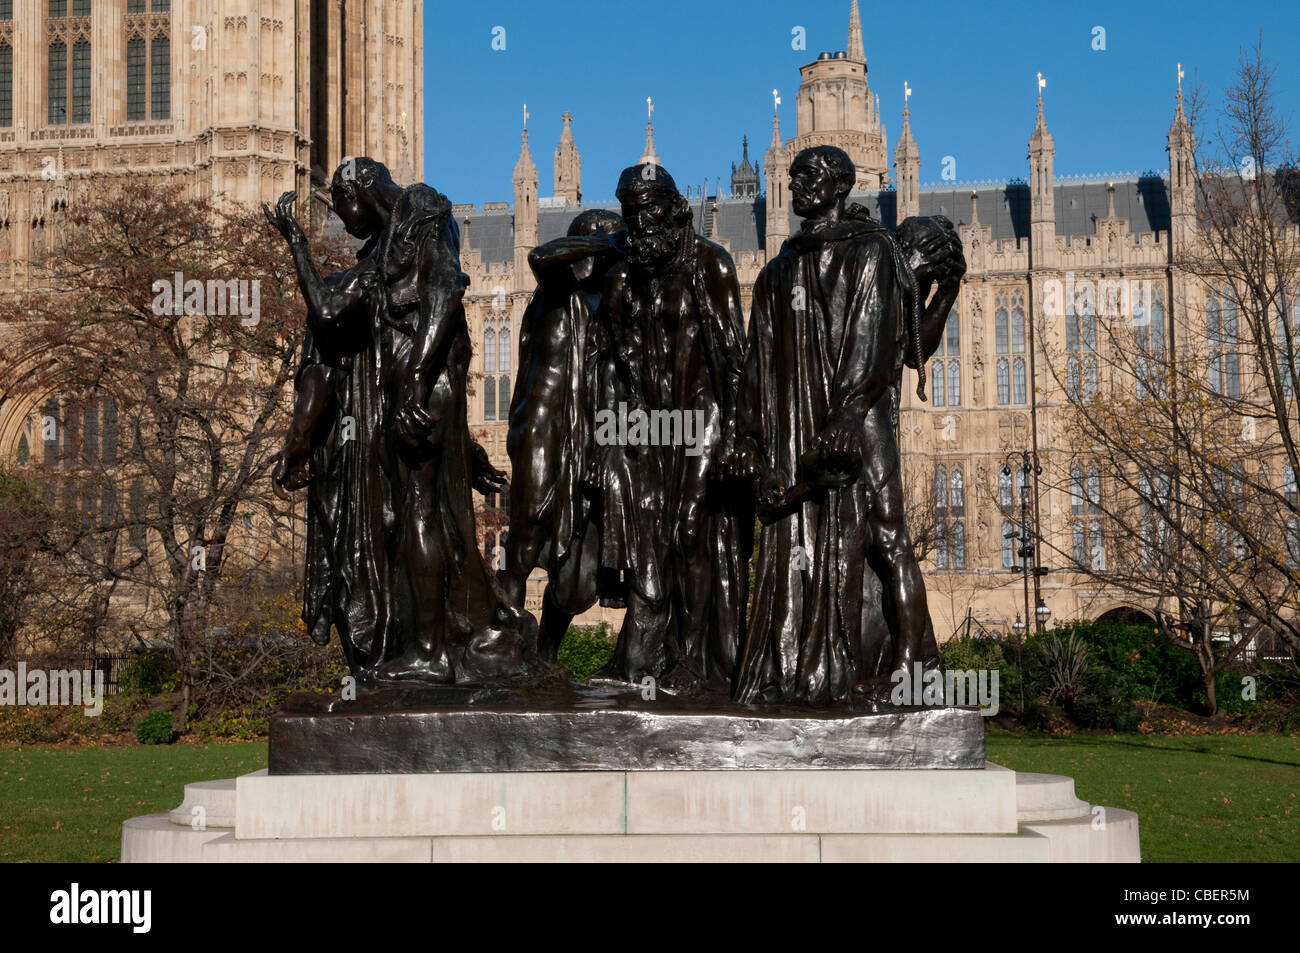 The Burghers of Calais Sculpture by Auguste Rodin, Victoria Tower Gardens, Westminster, London, England, UK - Stock Image